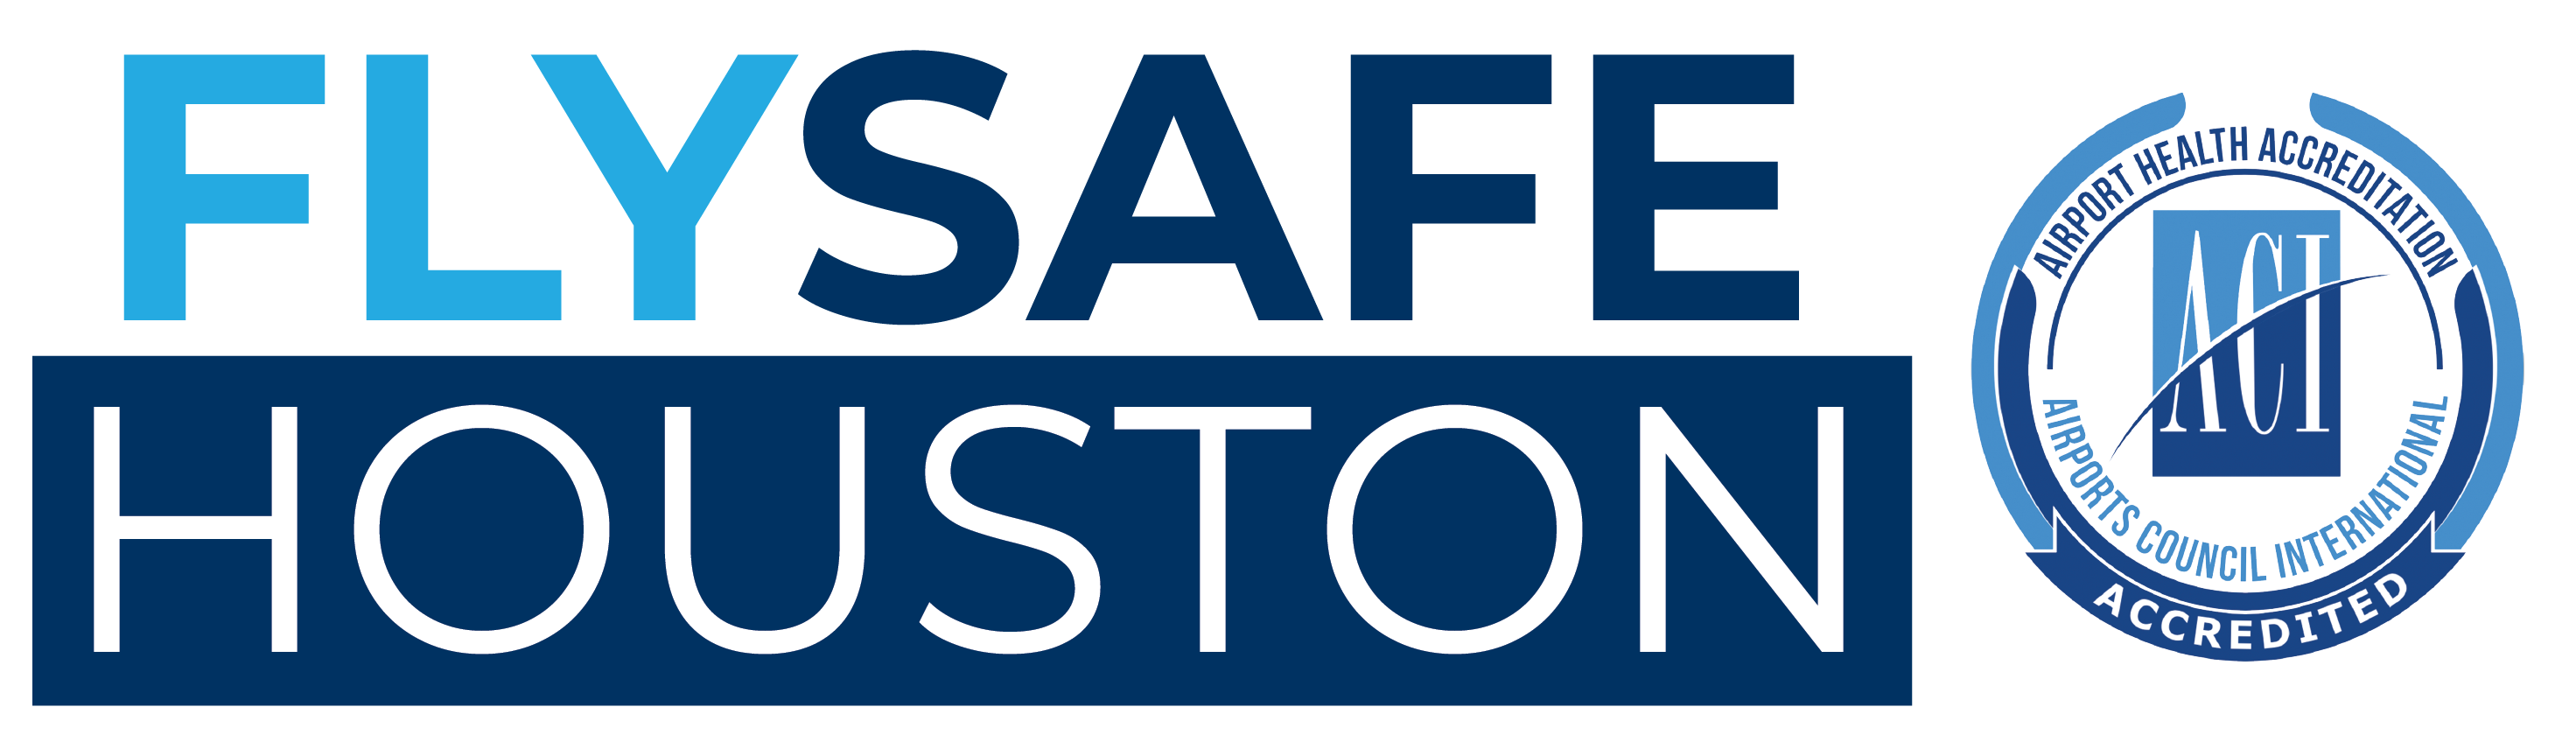 FlySafe Houston ACI logo